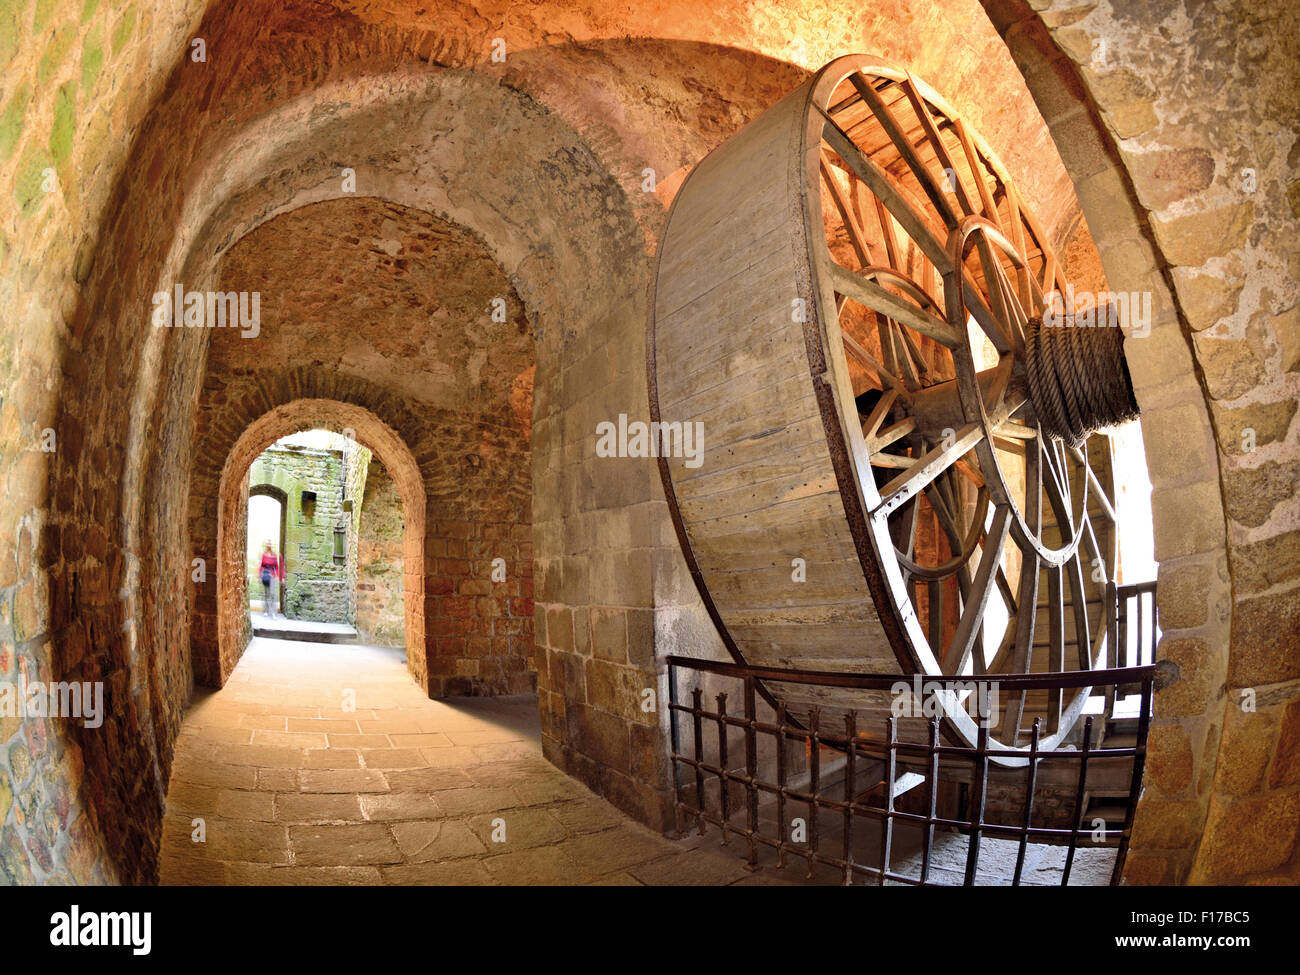 France, Normandy: Transport wheel in the Abbey of Le Mont St. Michel - Stock Image